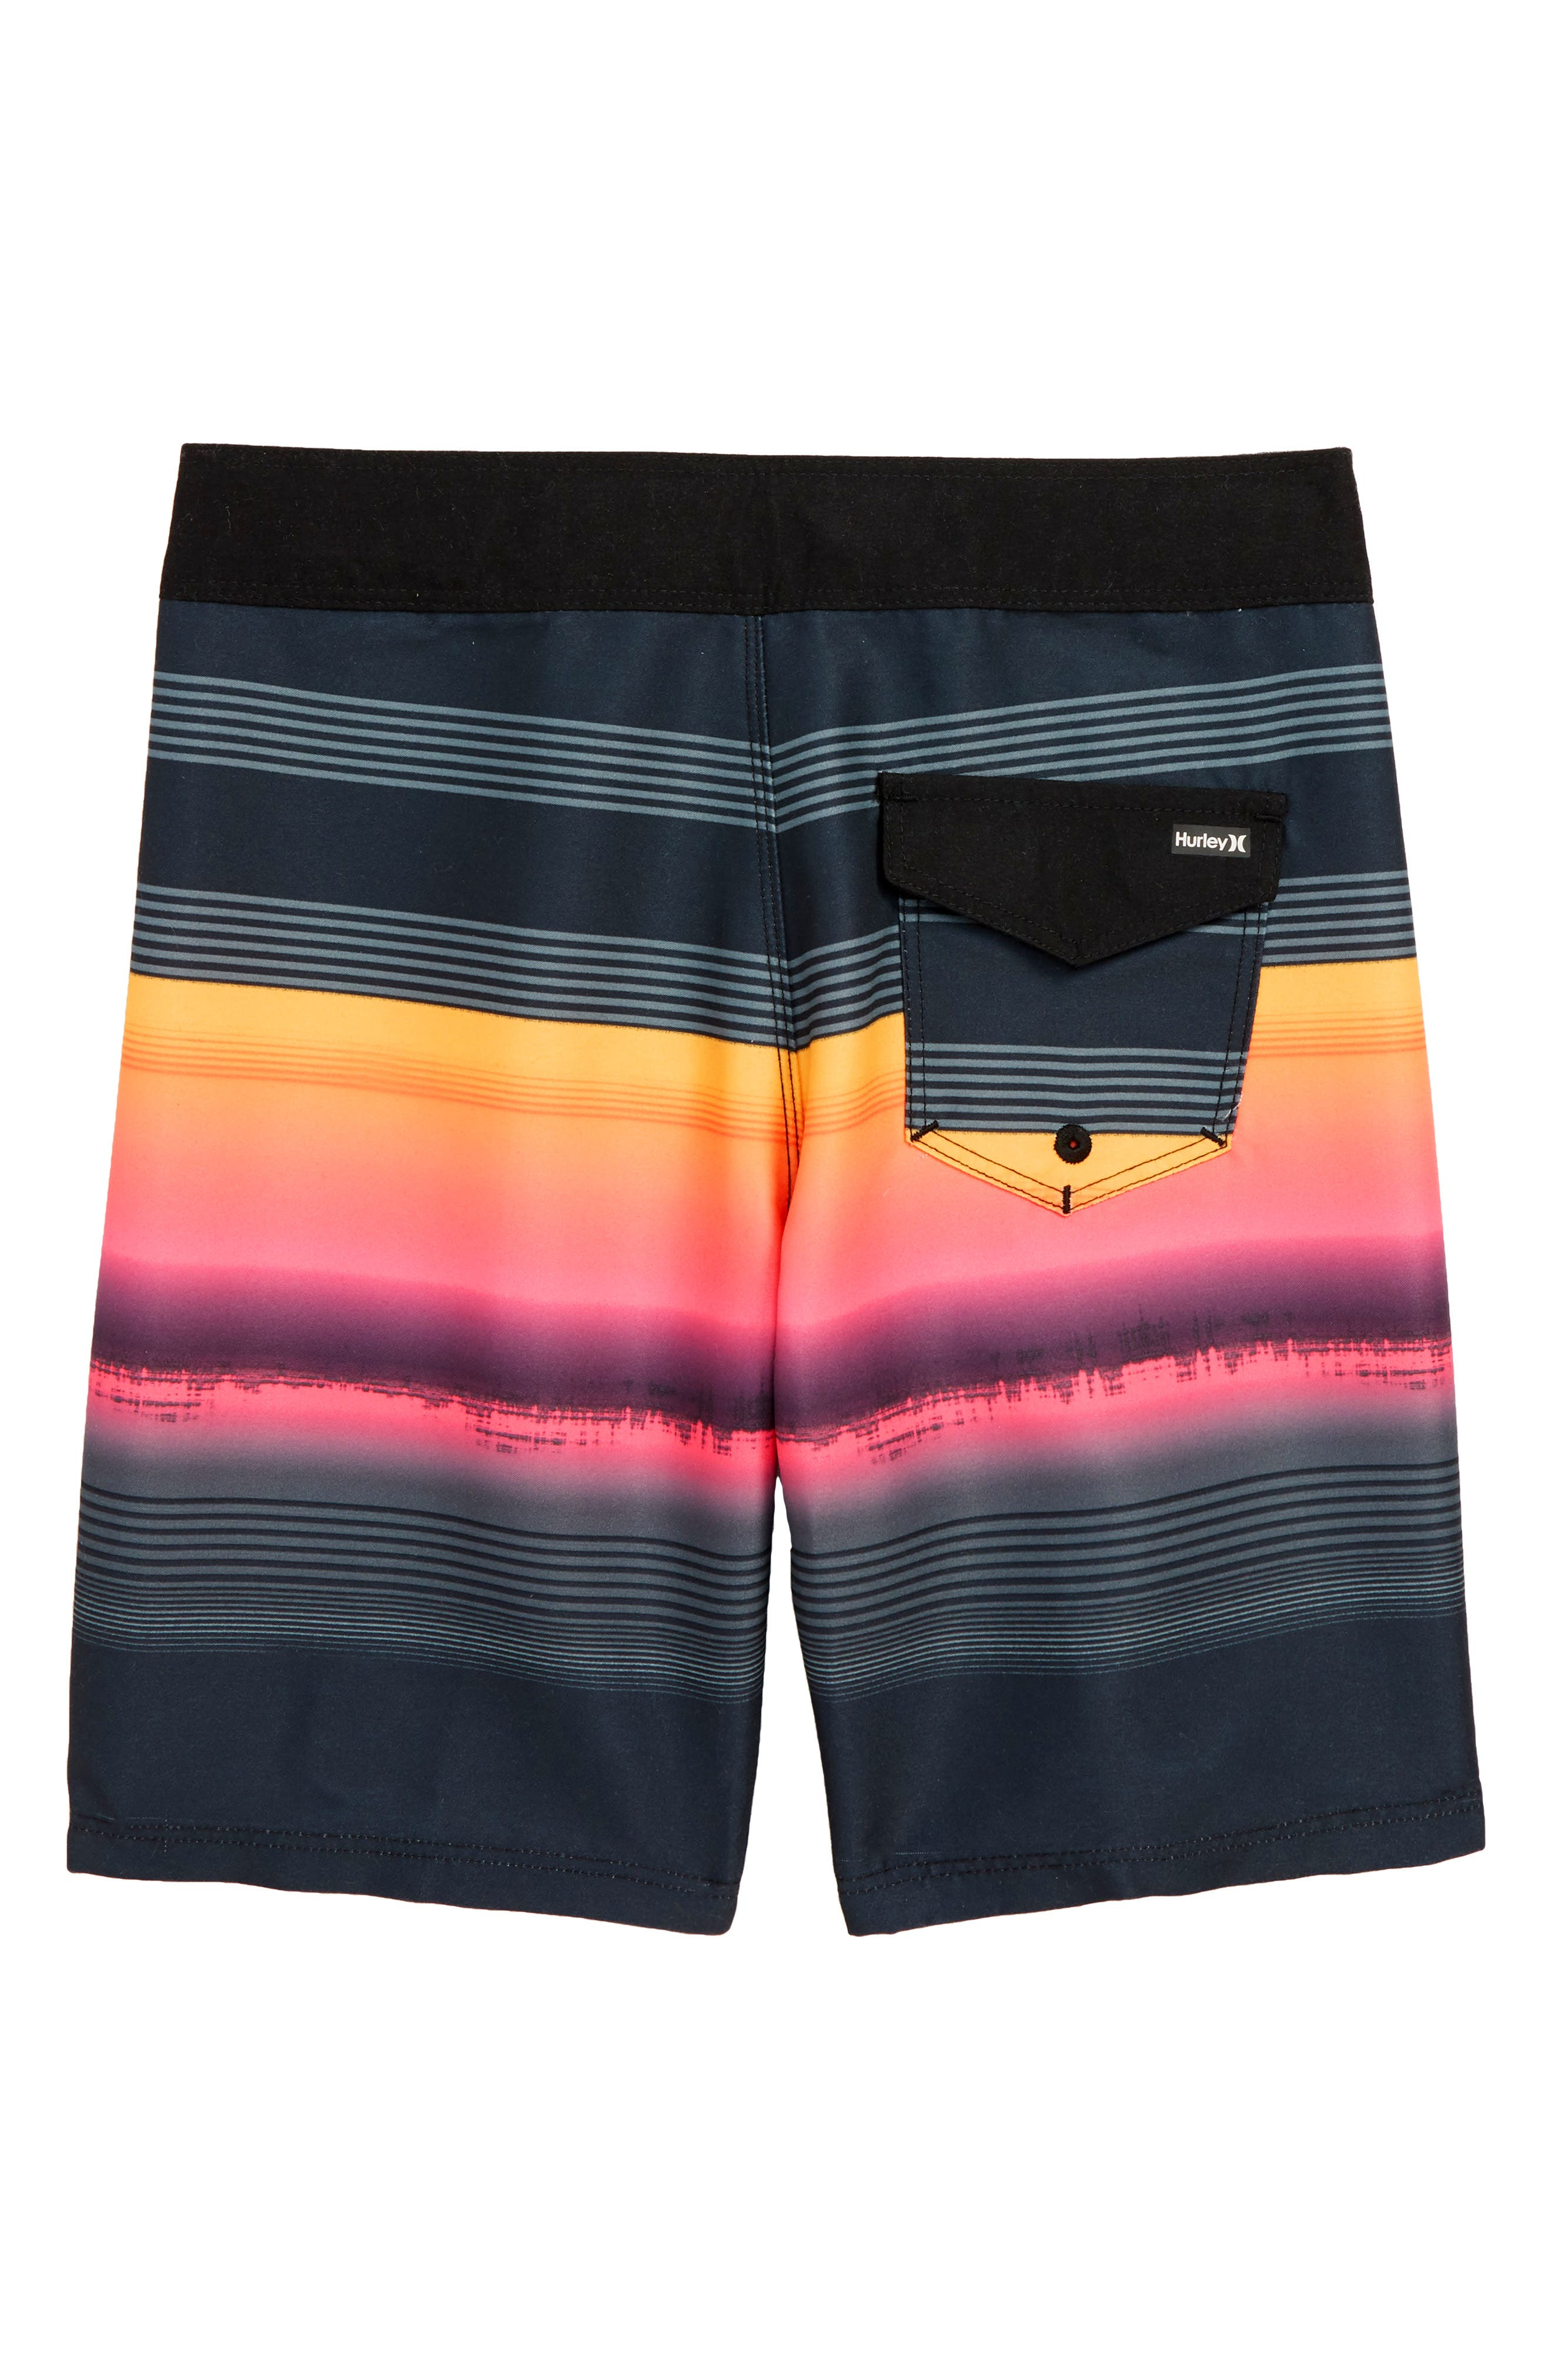 HURLEY,                             Gavitos Board Shorts,                             Alternate thumbnail 2, color,                             001